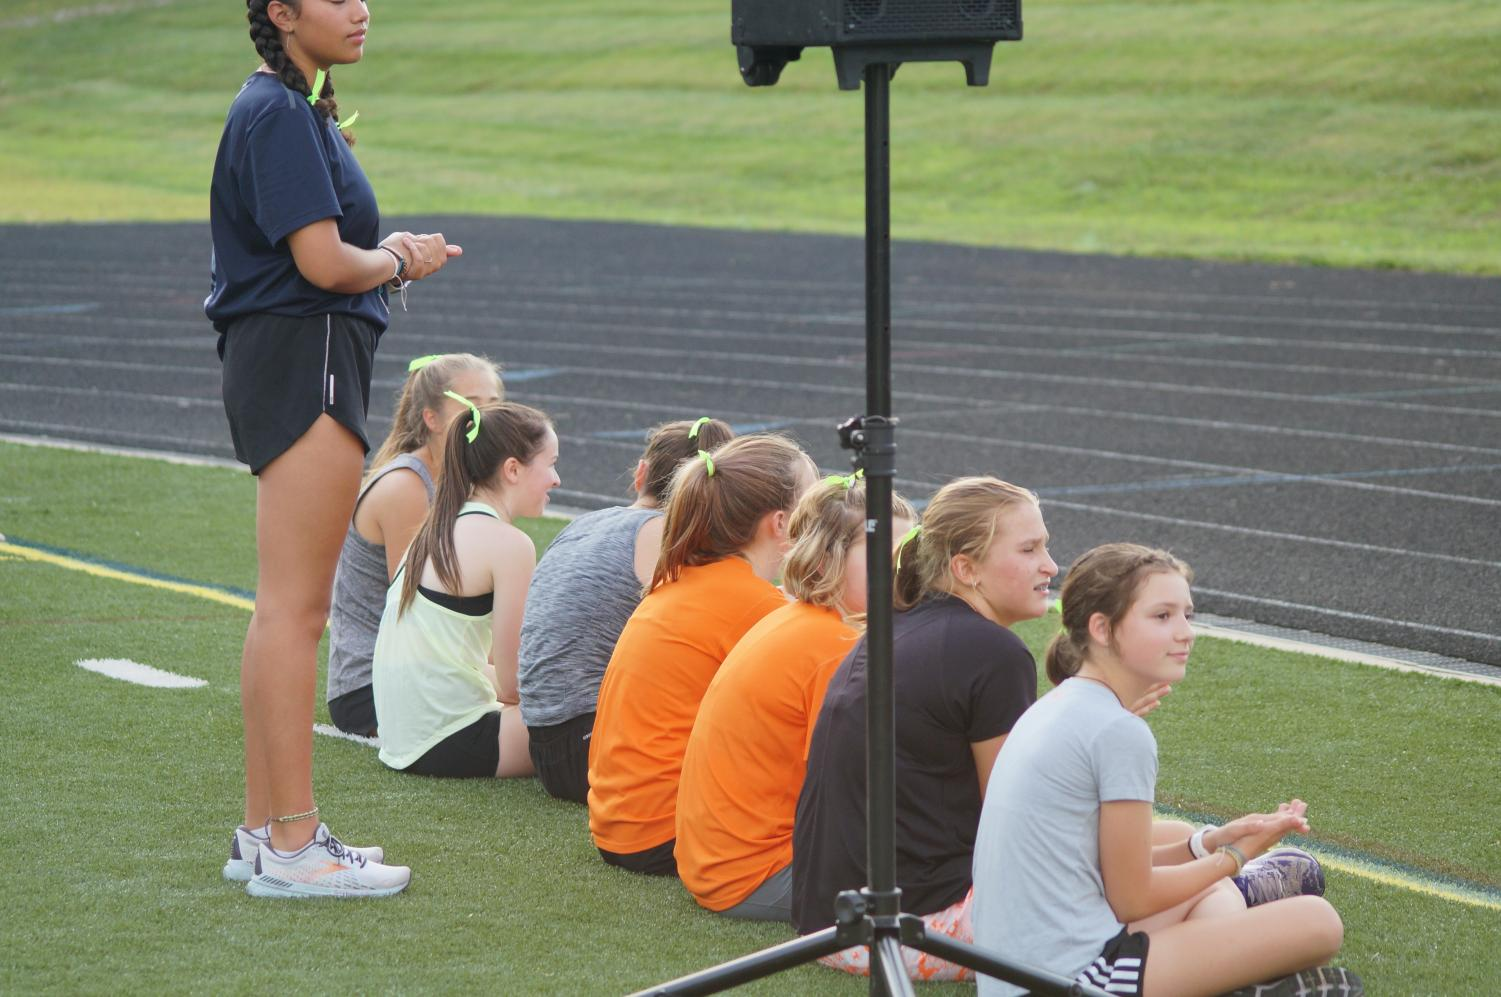 Hayes+Cross+Country+team+competes+in+time+trials